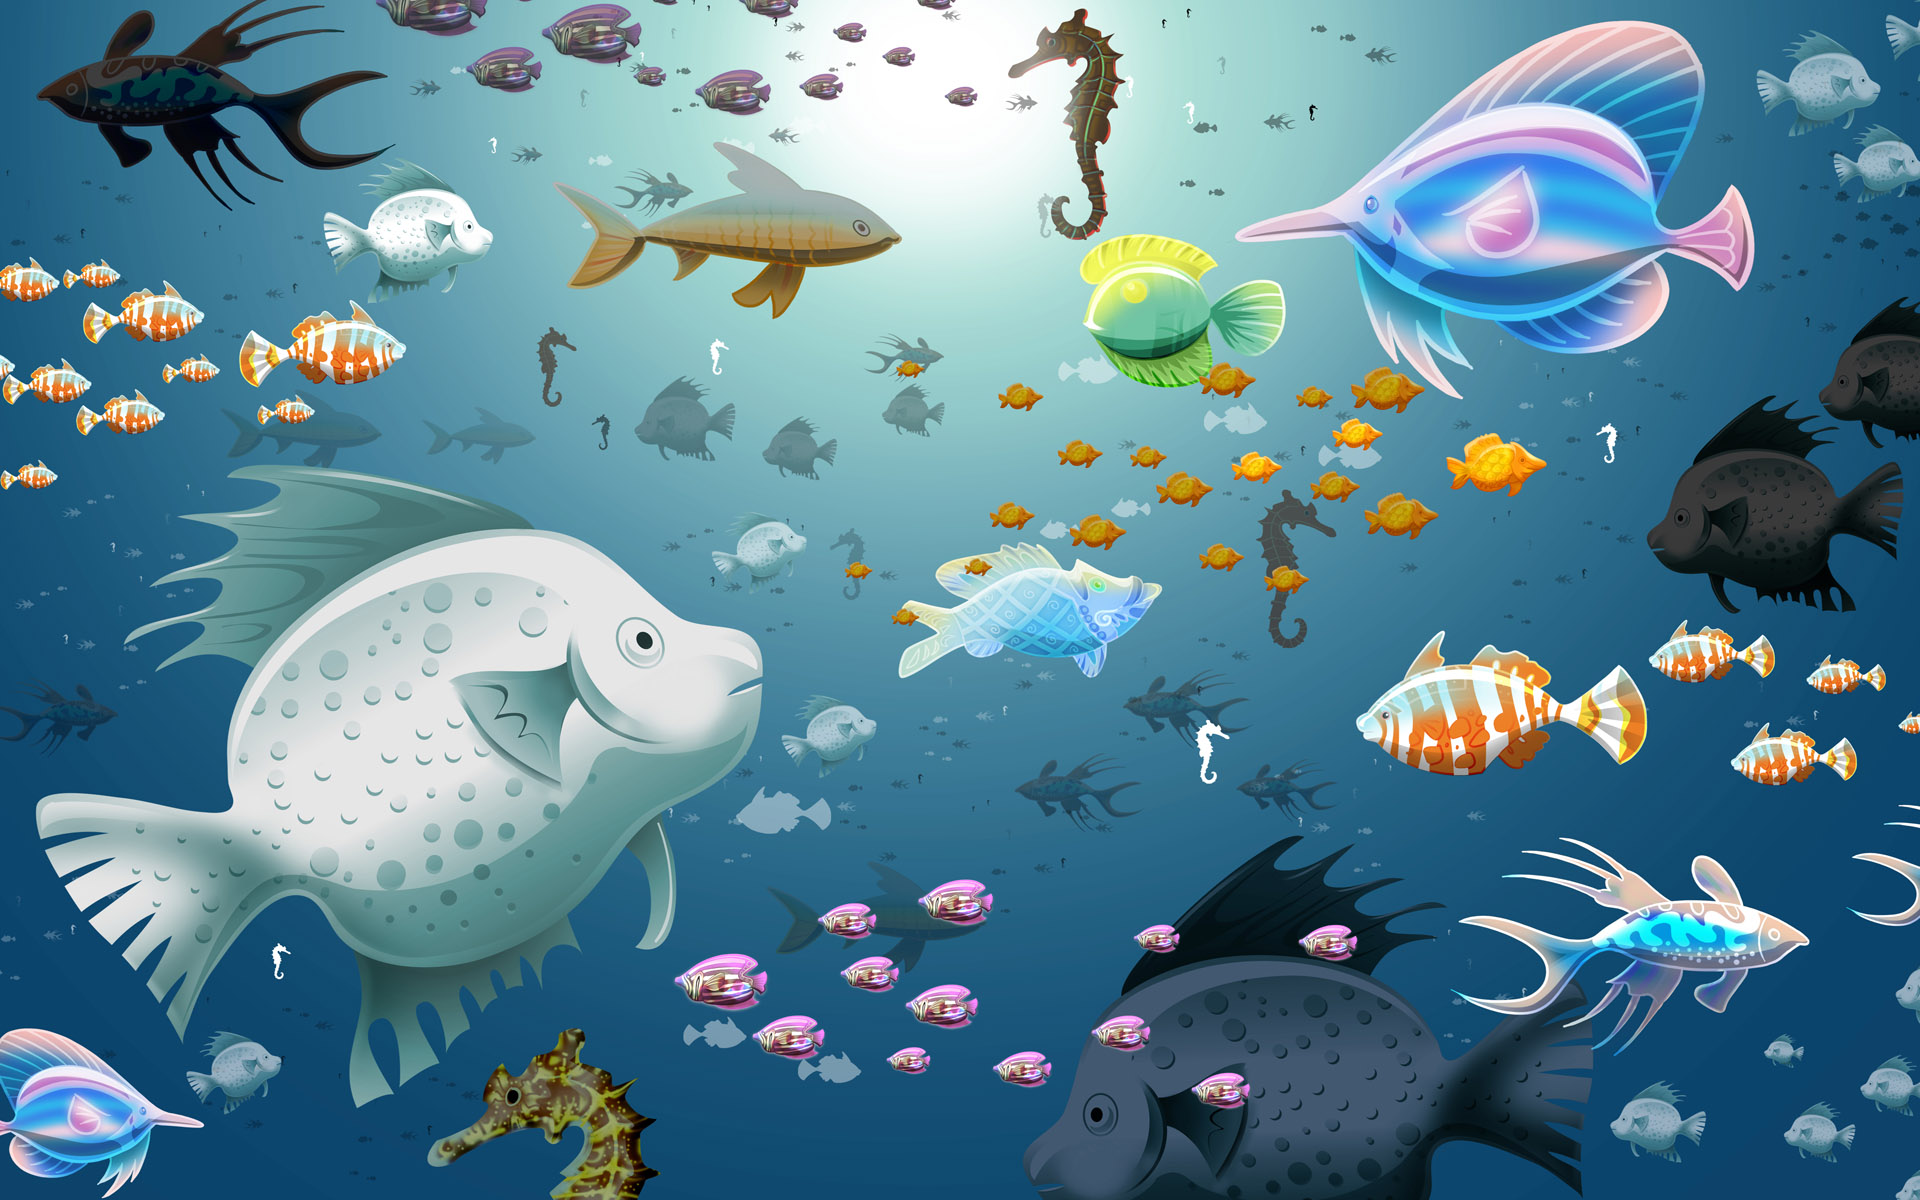 wallpaper stores wallpapers fish designer discount 1920x1200